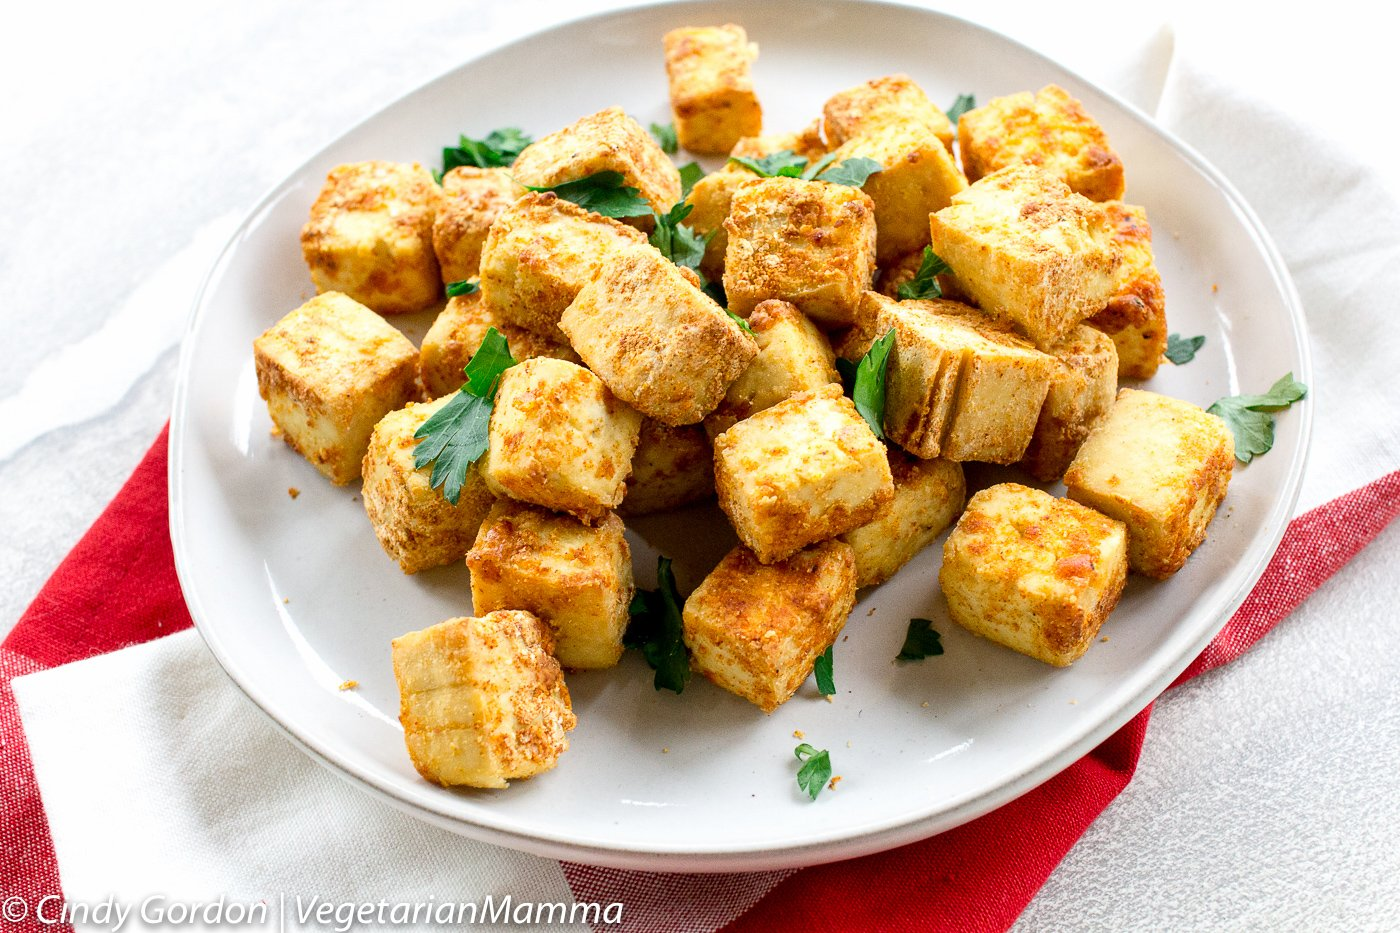 plate of Crispy Air Fryer Tofu with fresh parsley sprinkled over